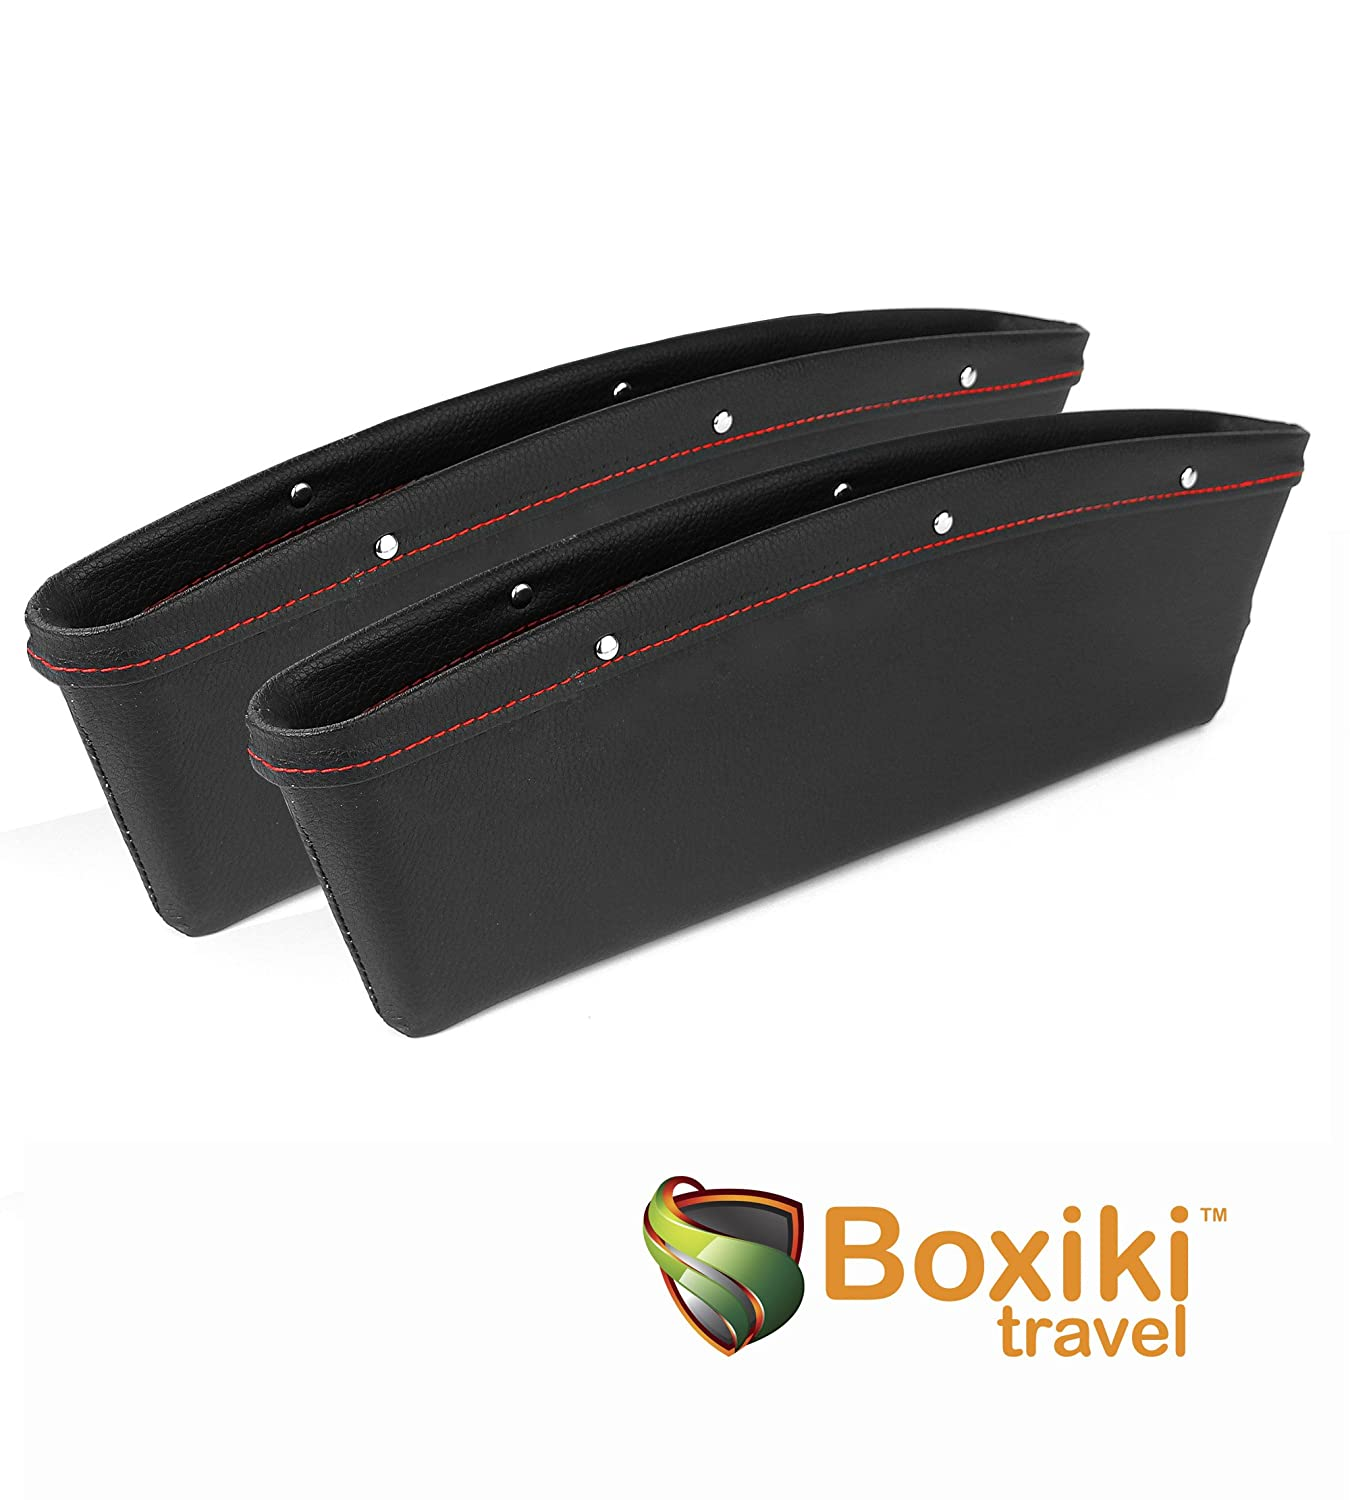 Vehicle Storage Box | Premium PU Leather Seat Catcher | Gap Filler Car Organizer| Compartment for Snacks, Electronics &Travel Essentials | Seat Side Pocket by Boxiki Travel 4336806530